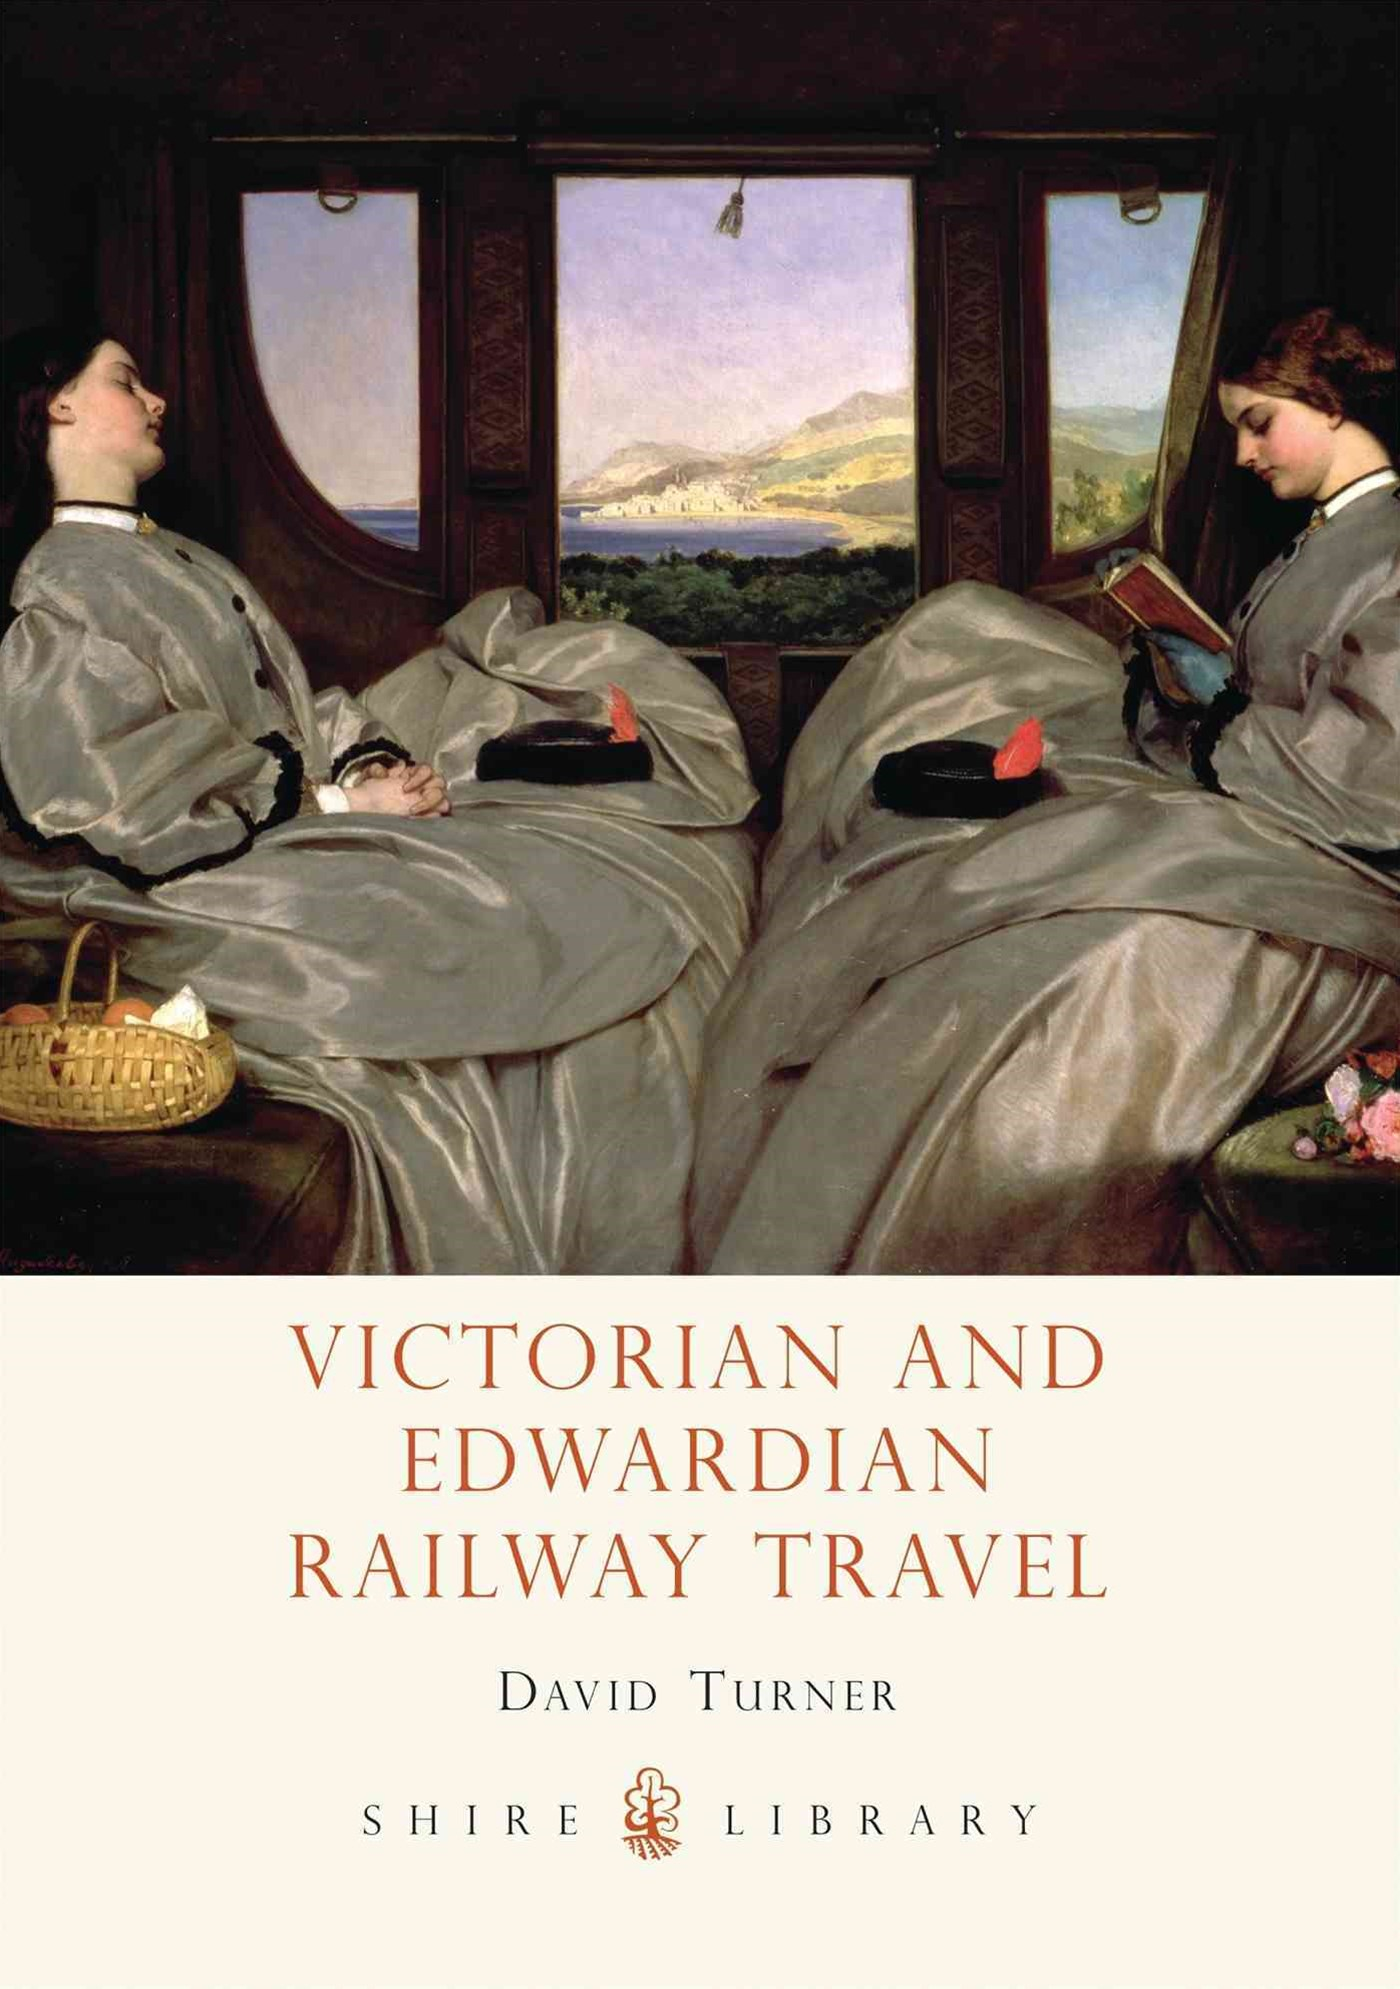 Victorian and Edwardian Railway Travel